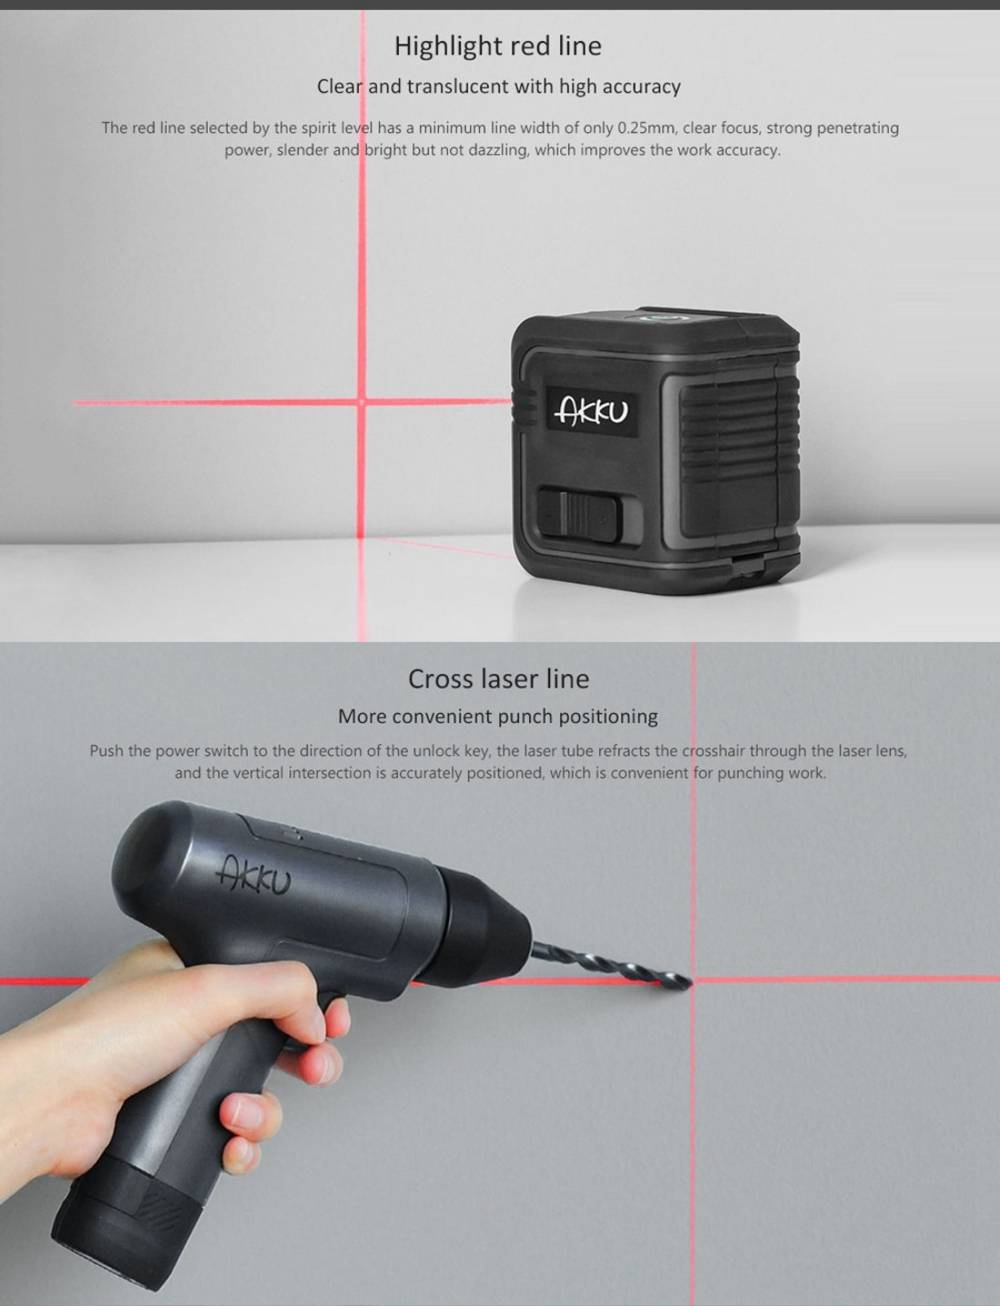 Xiaomi AKKU Infrared Laser Level Measuring Tool Automatic Anping Cross Laser Line - Grey